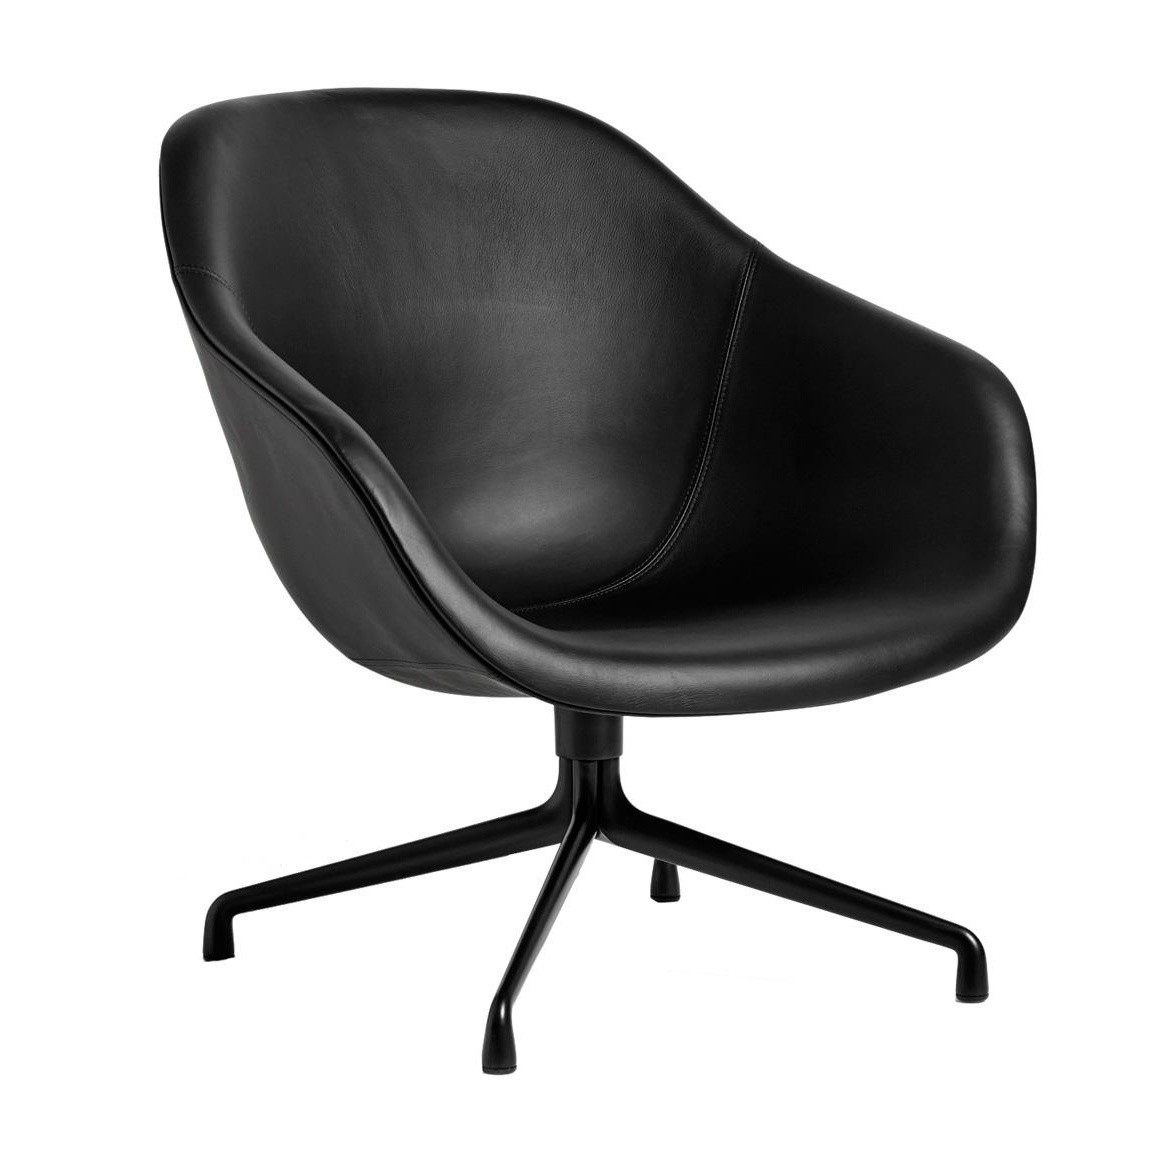 hay about a lounge chair aal81 leather chair ambientedirect. Black Bedroom Furniture Sets. Home Design Ideas